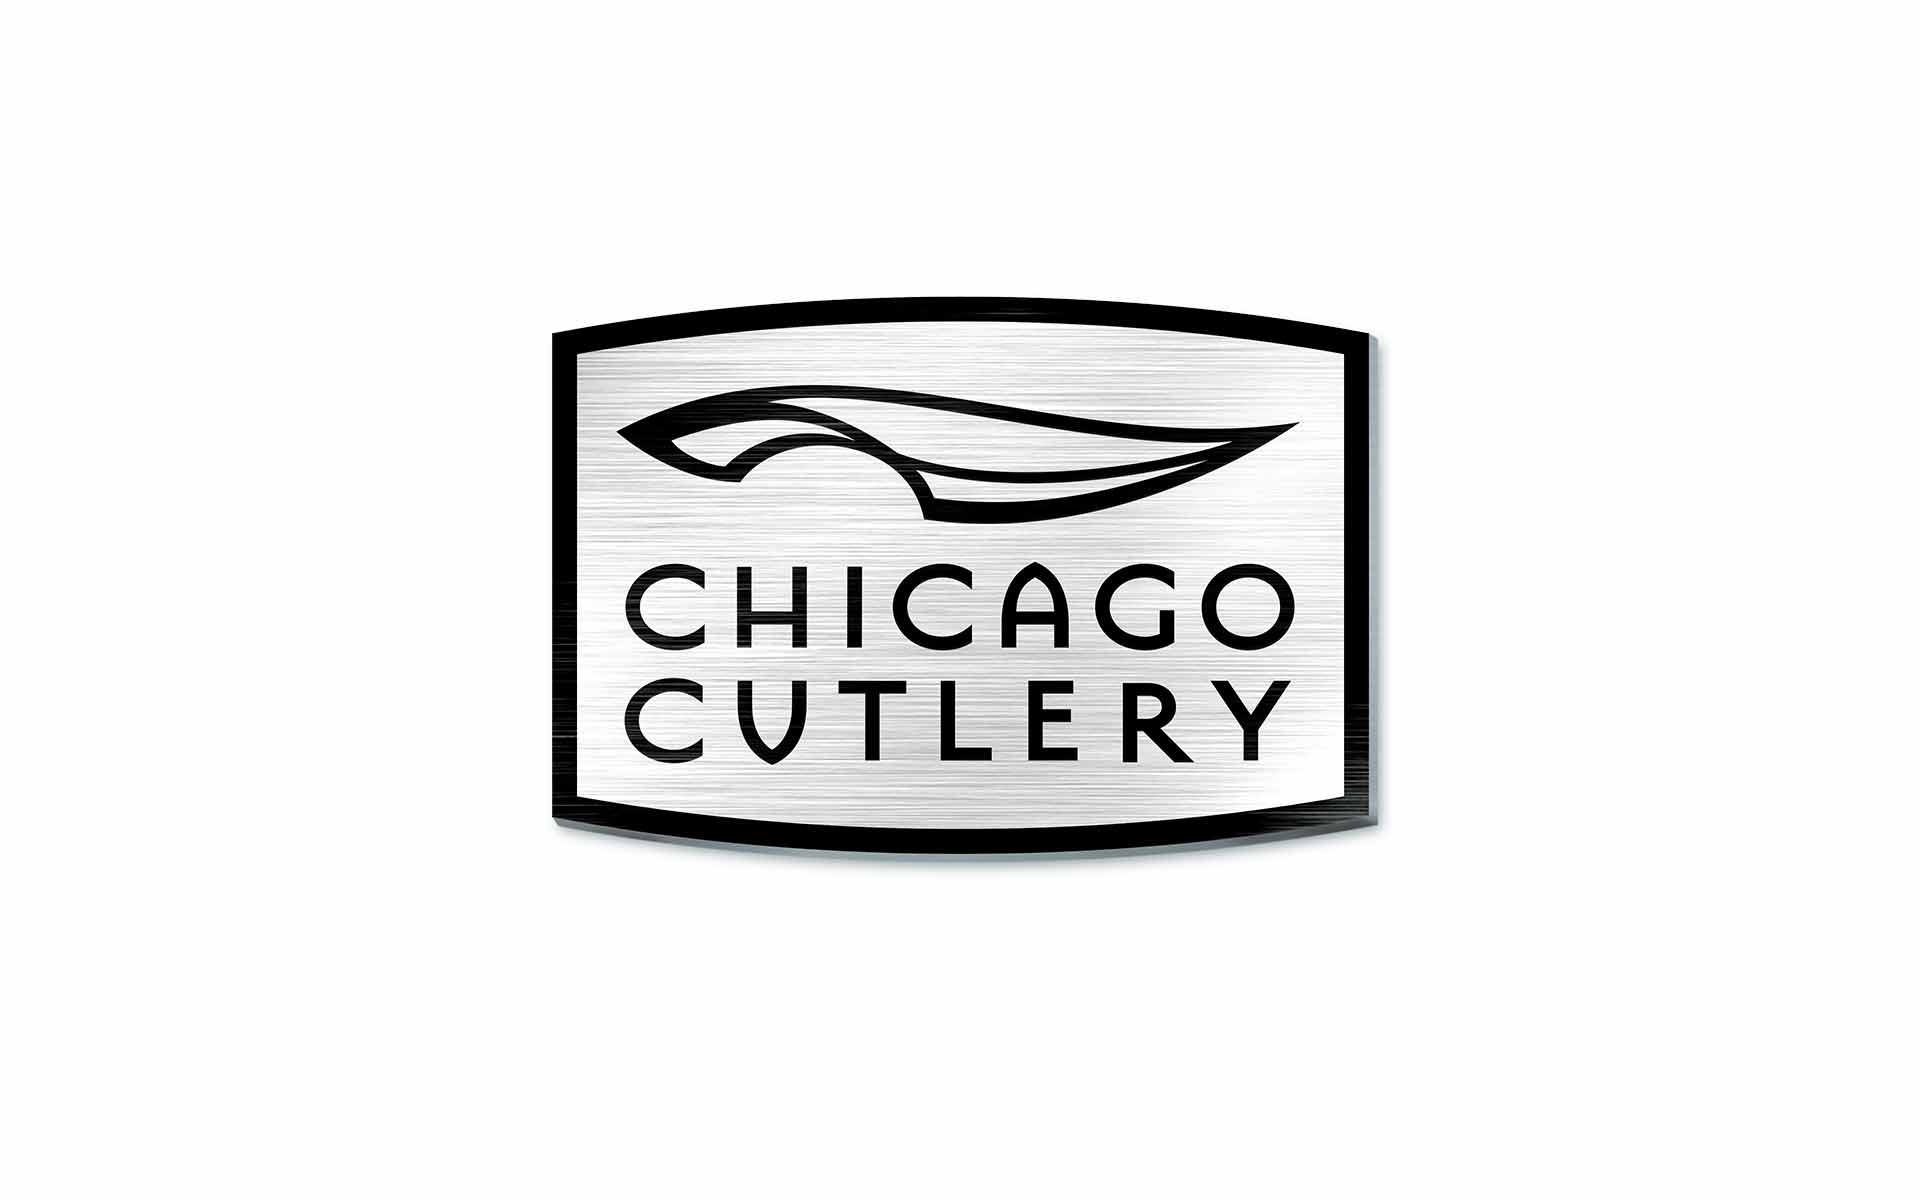 Chicago Cutlery - Brand Identity